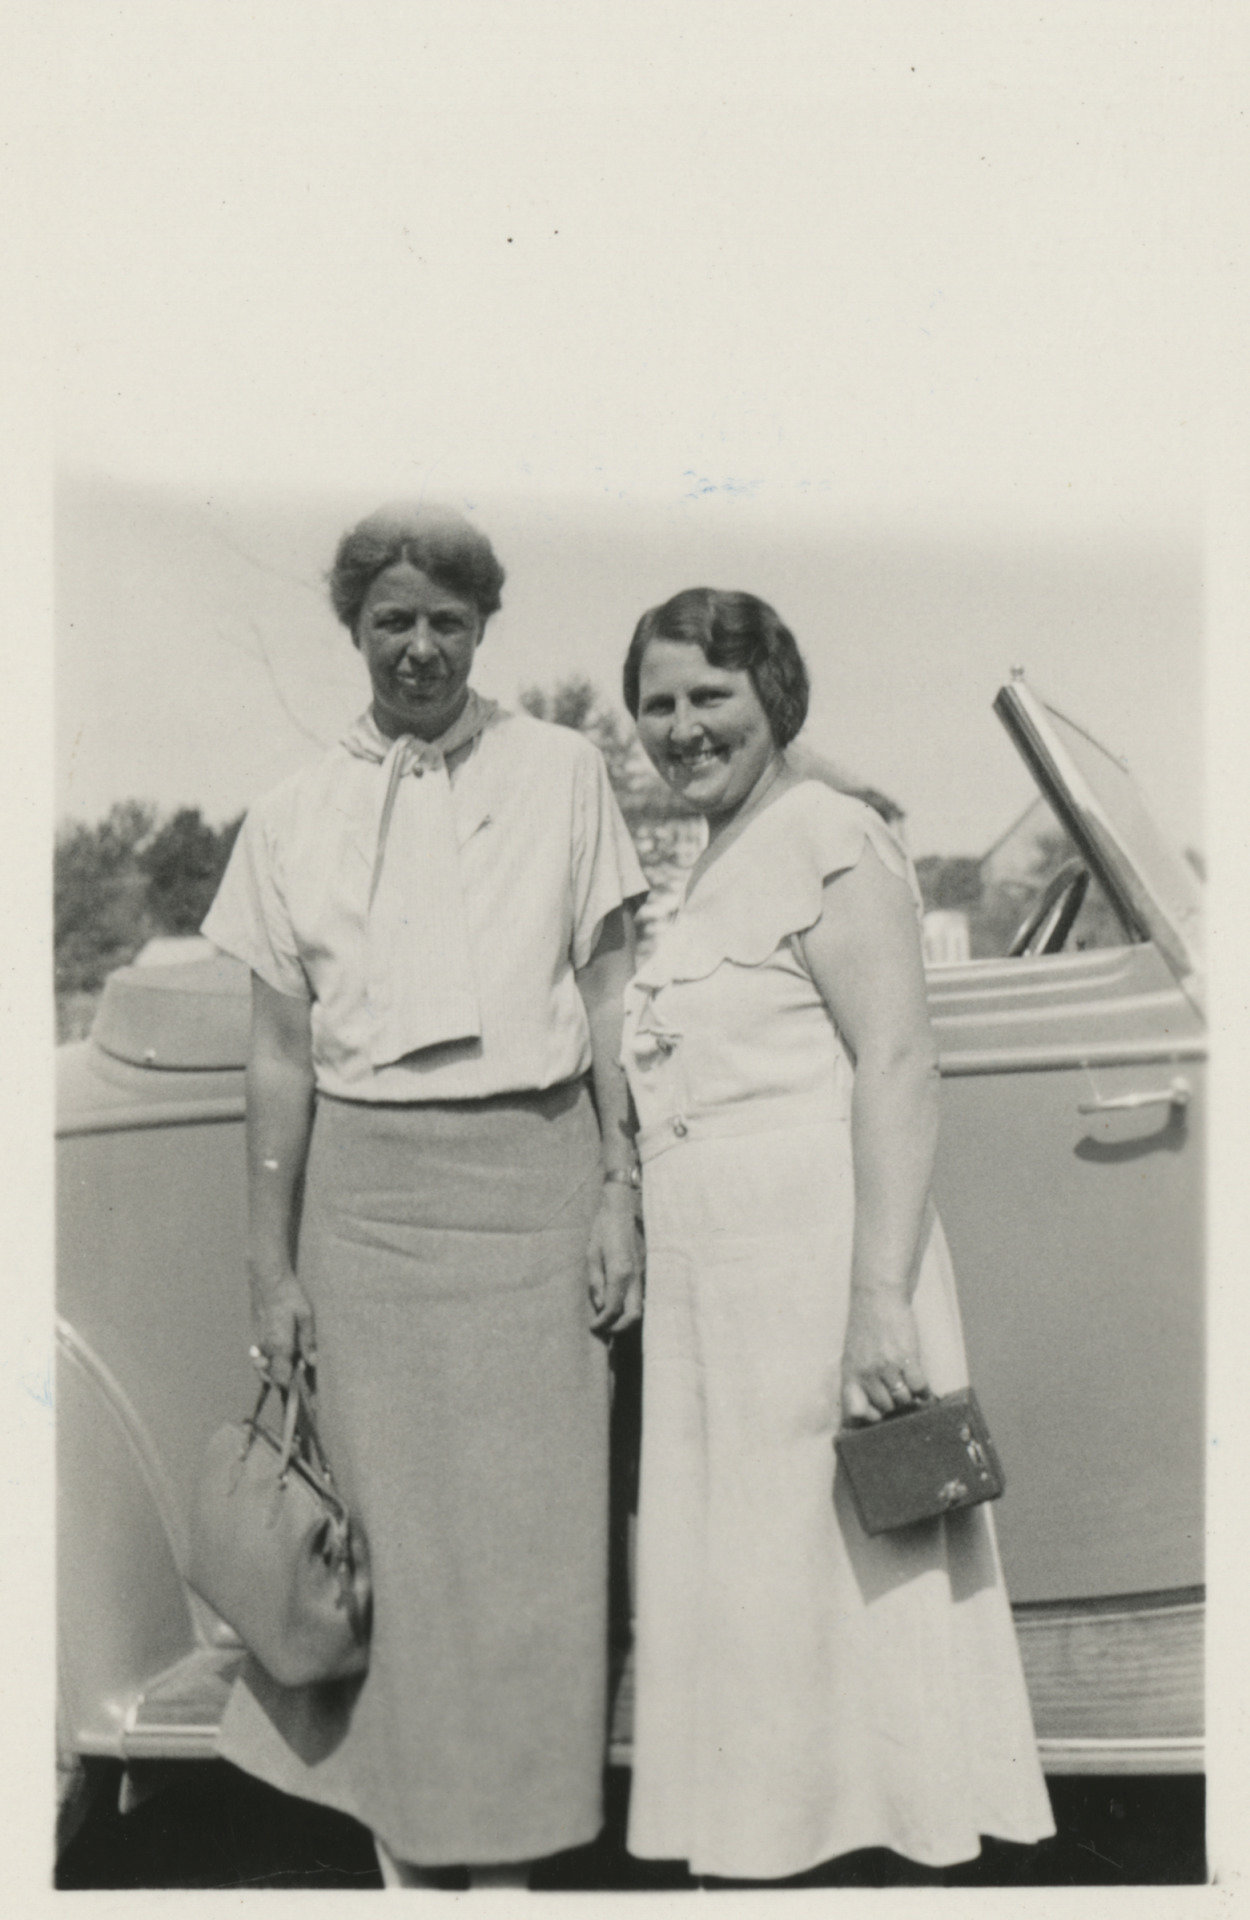 Eleanor Roosevelt during her road trip with Lorena Hickok, July 1933. Credit: Franklin D. Roosevelt Library